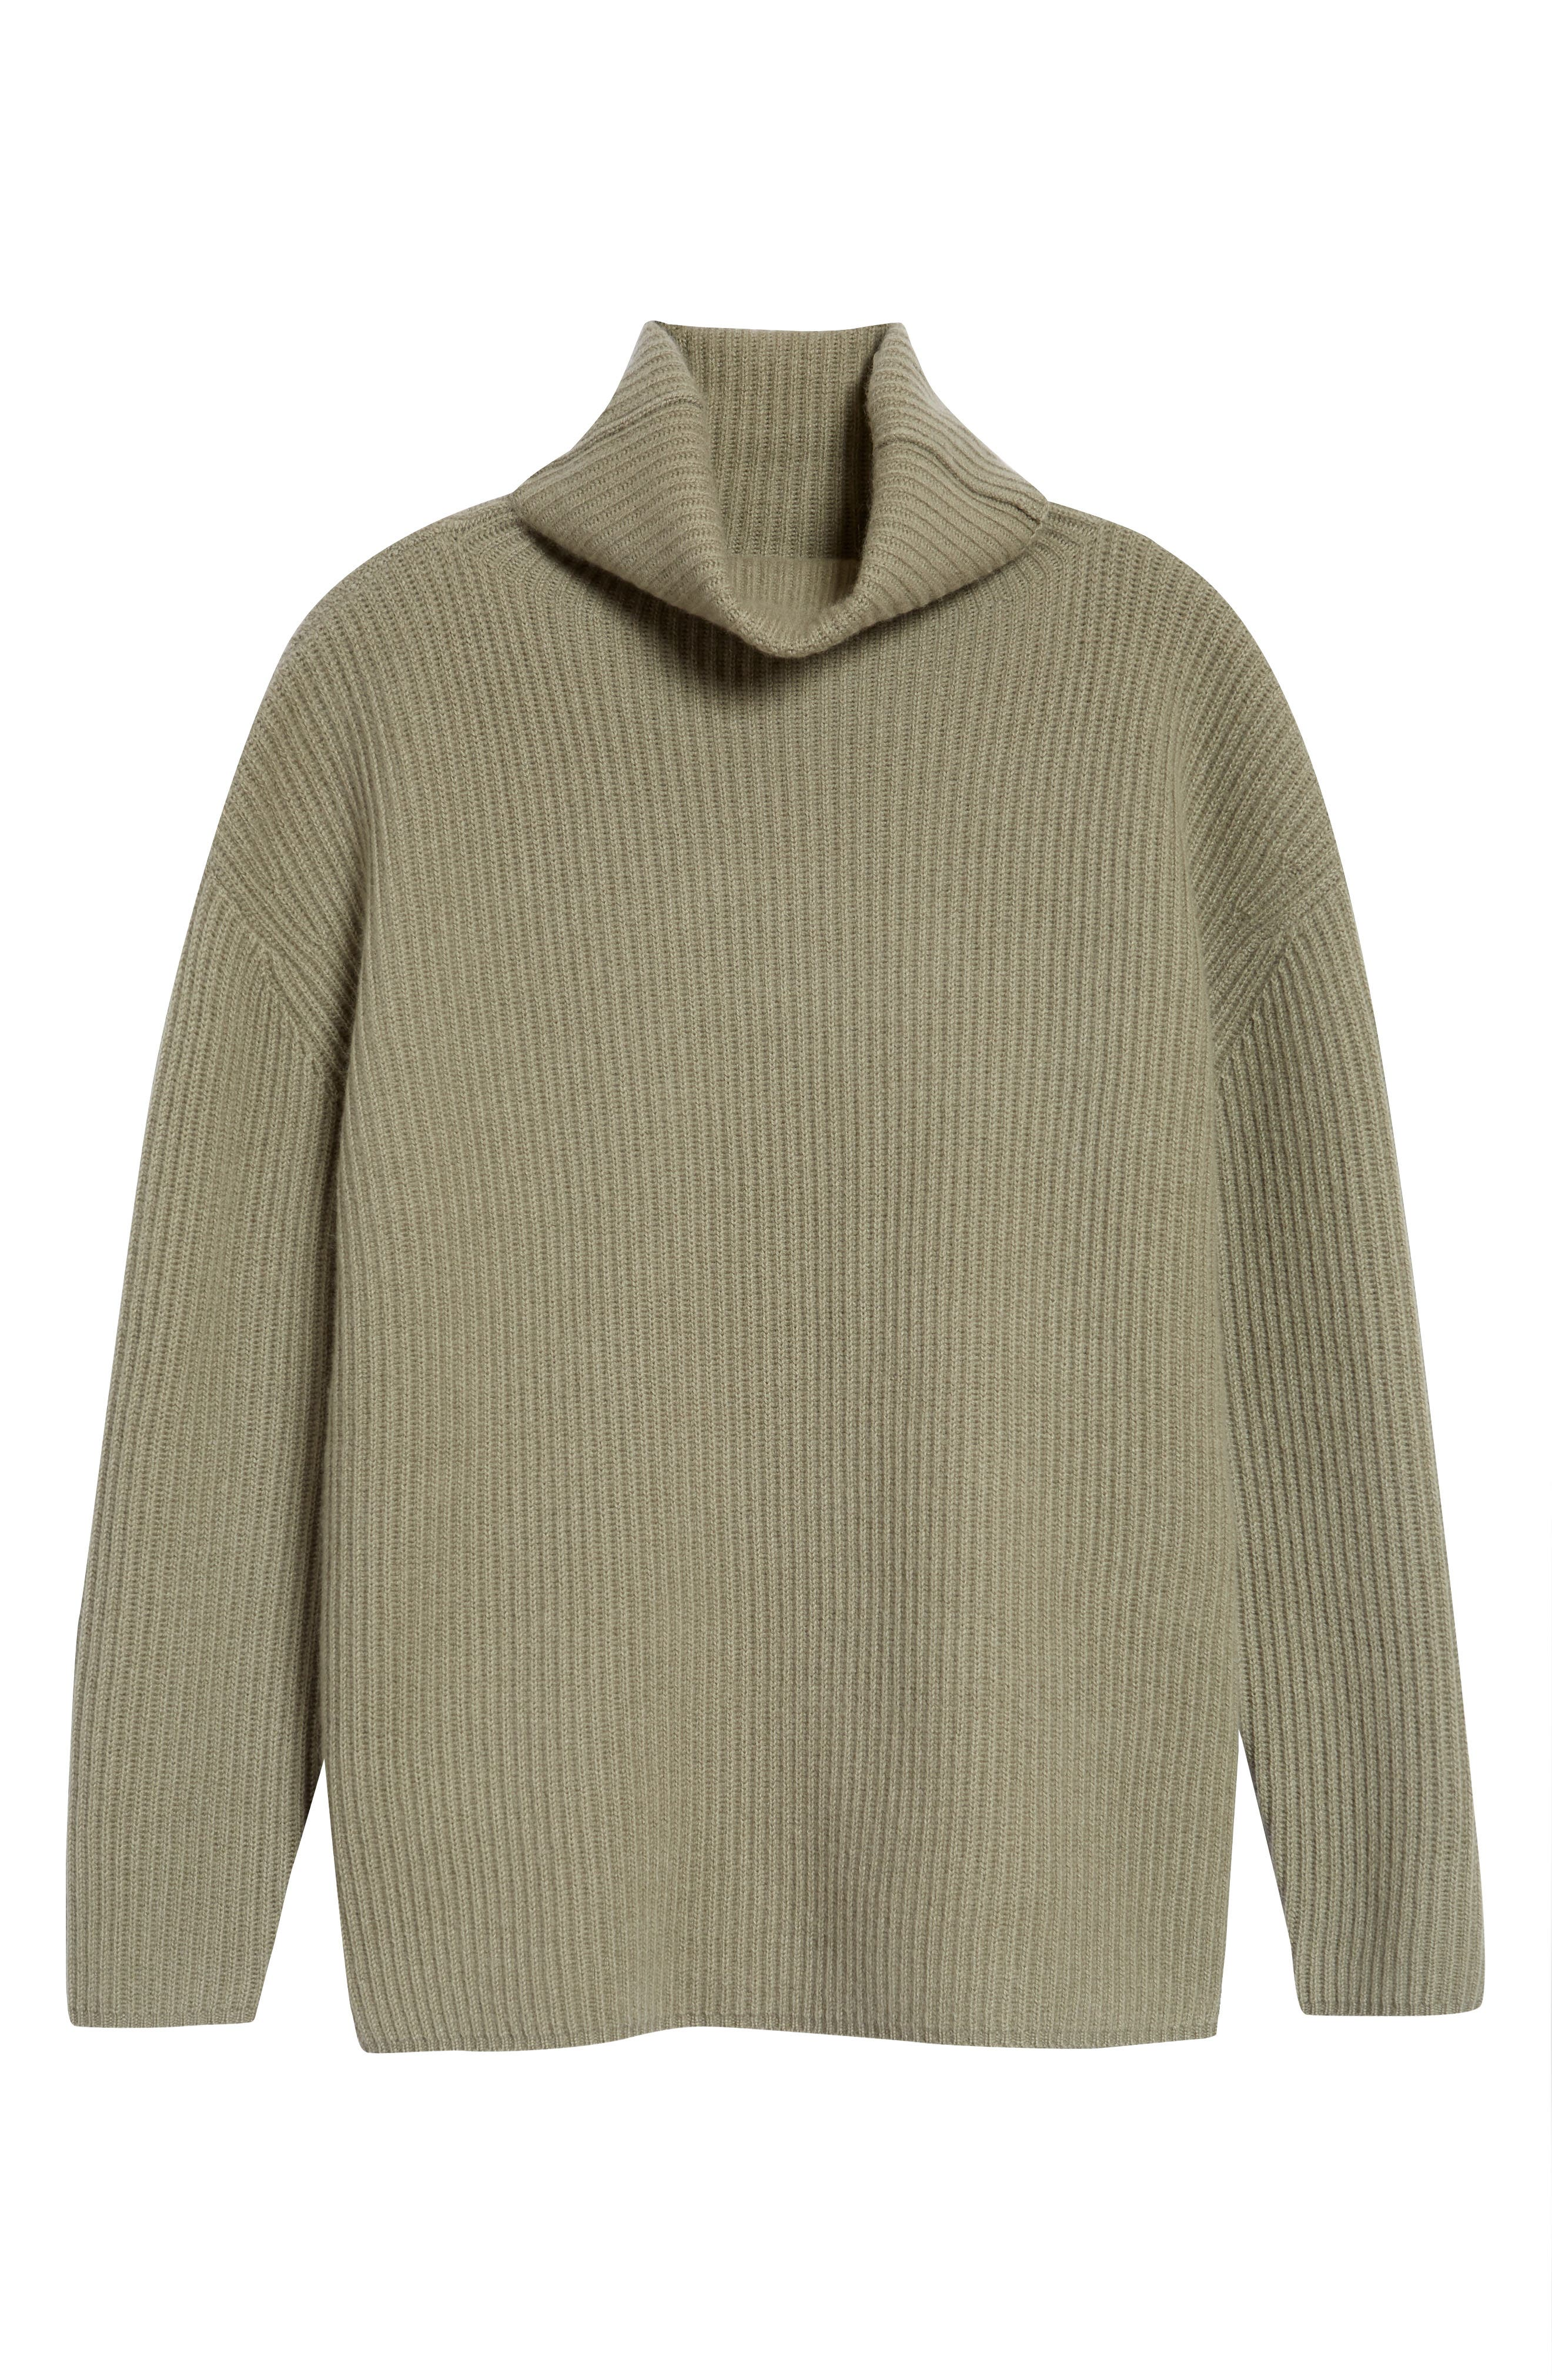 A fold-over funnel neck frames the face atop this easy, wear-everywhere tunic sweater knit from sumptuous cashmere yarn. Style Name: Nordstrom Signature Funnel Neck Cashmere Tunic Sweater. Style Number: 6037641. Available in stores.